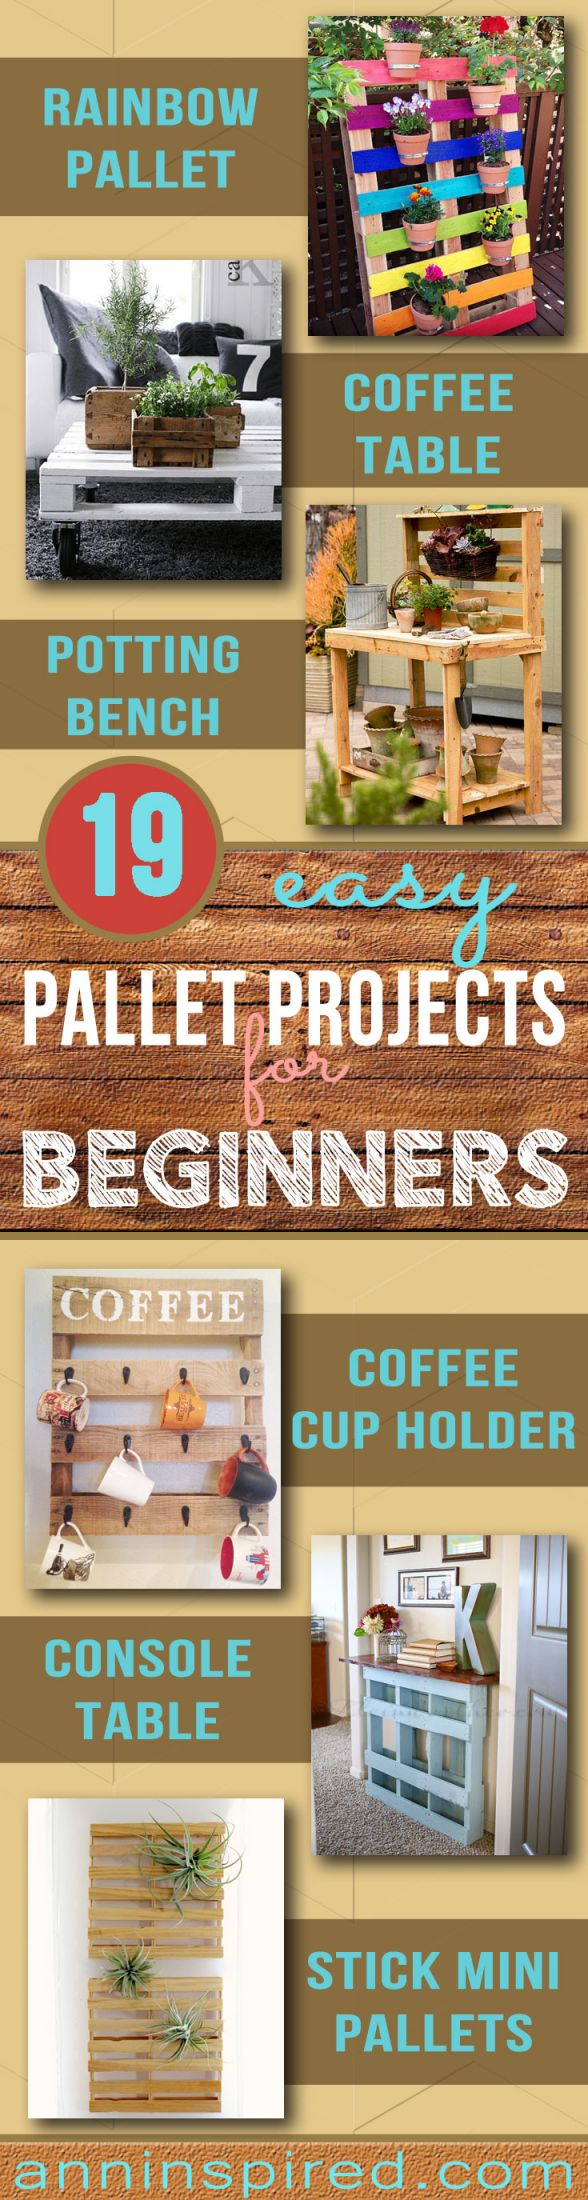 Wonderful pallet projects for beginners